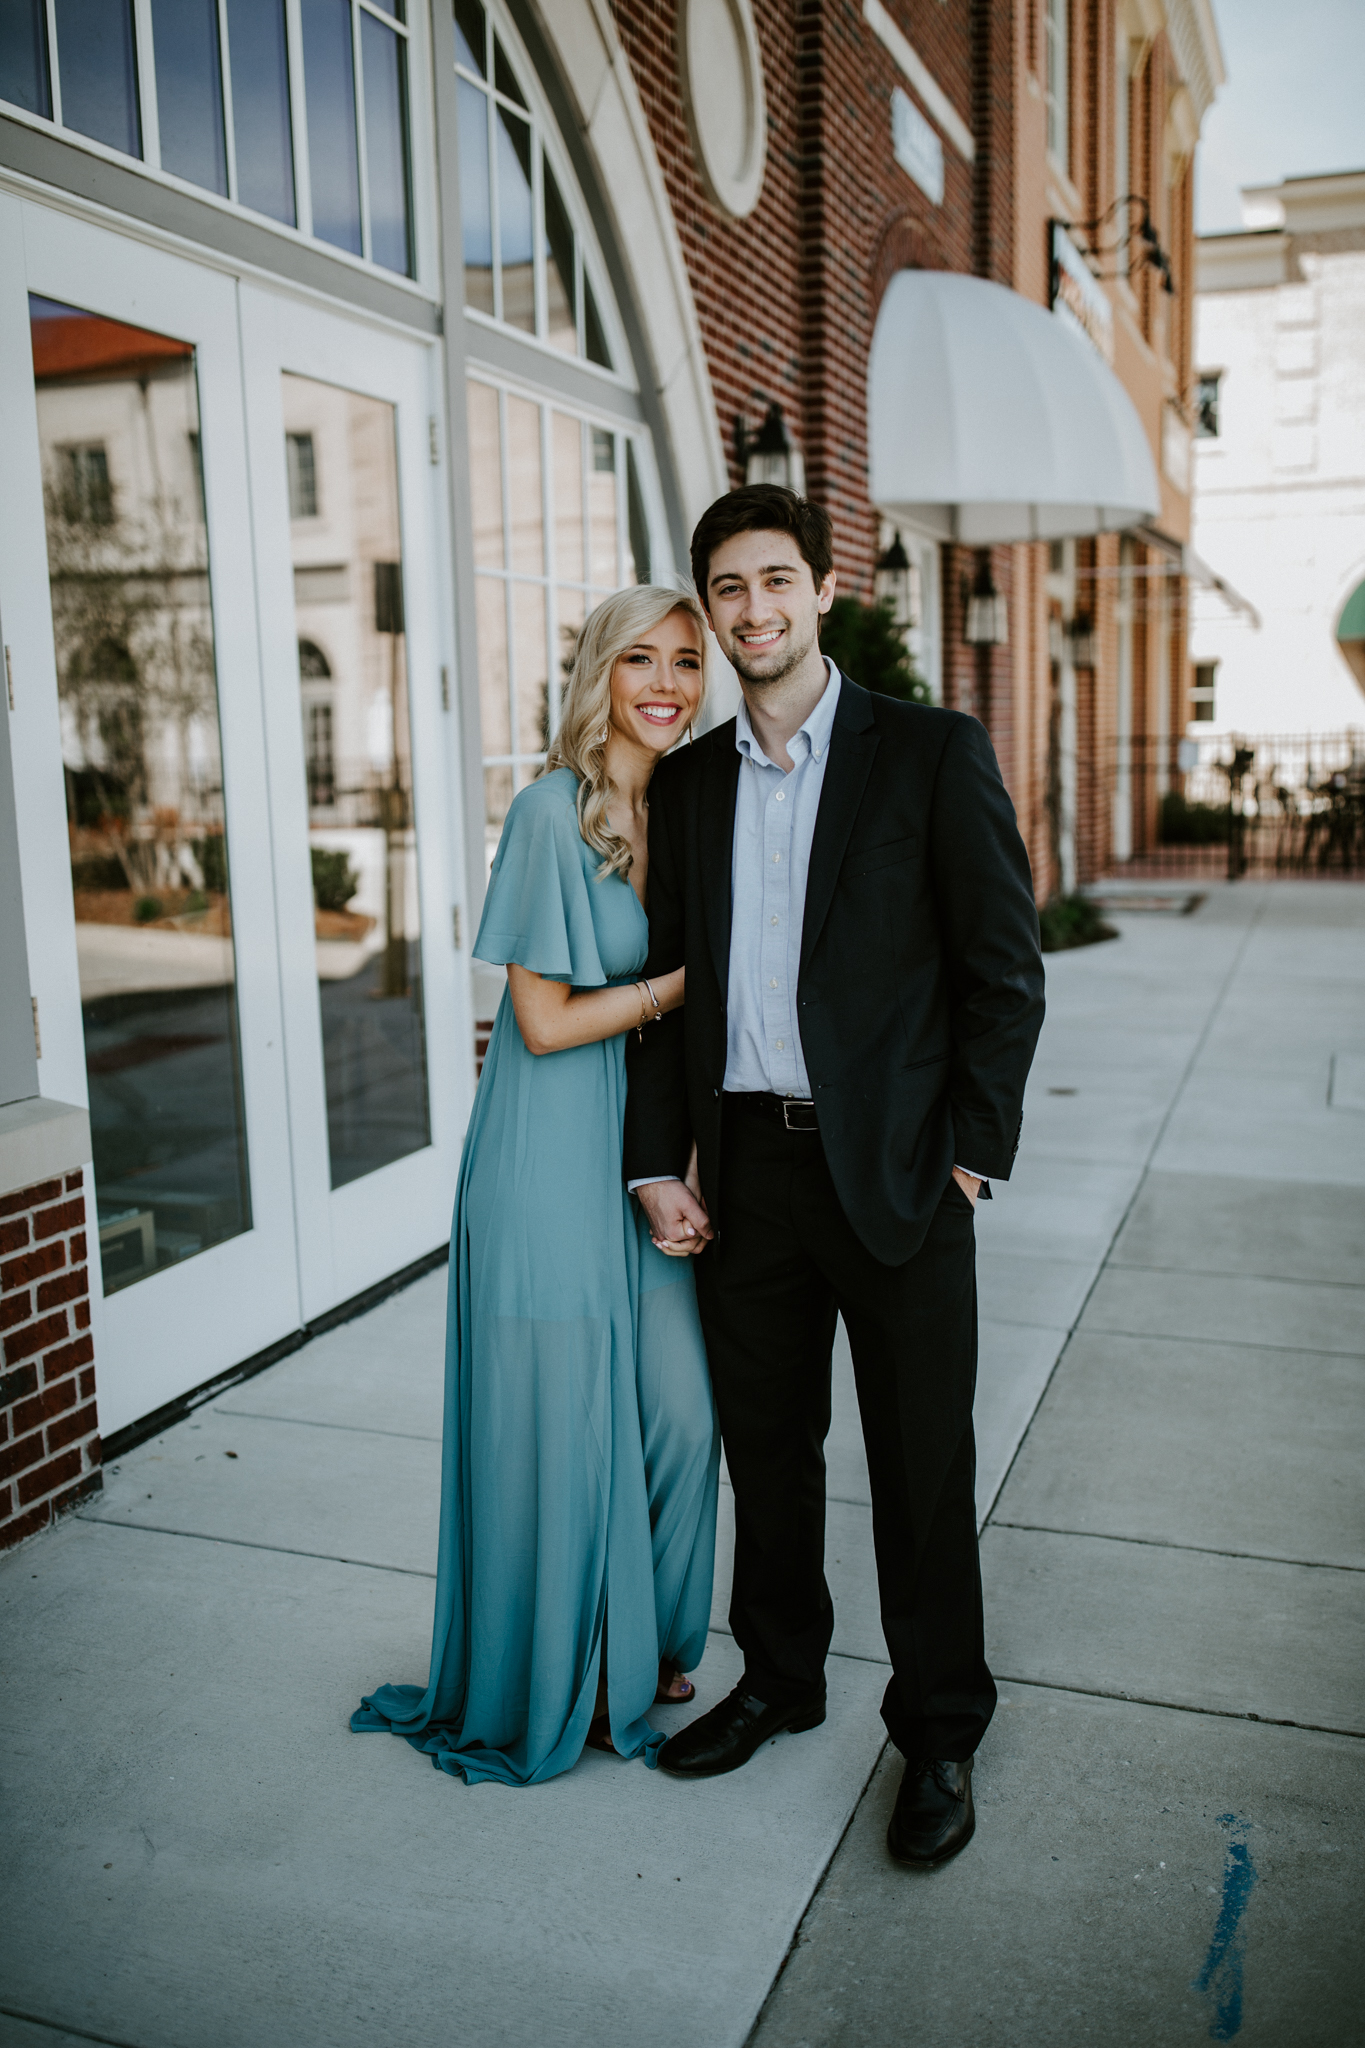 Ali-and-Jake-Chattanooga-Nashville-Tennessee-Wedding-Elopement-Photographer-63.jpg